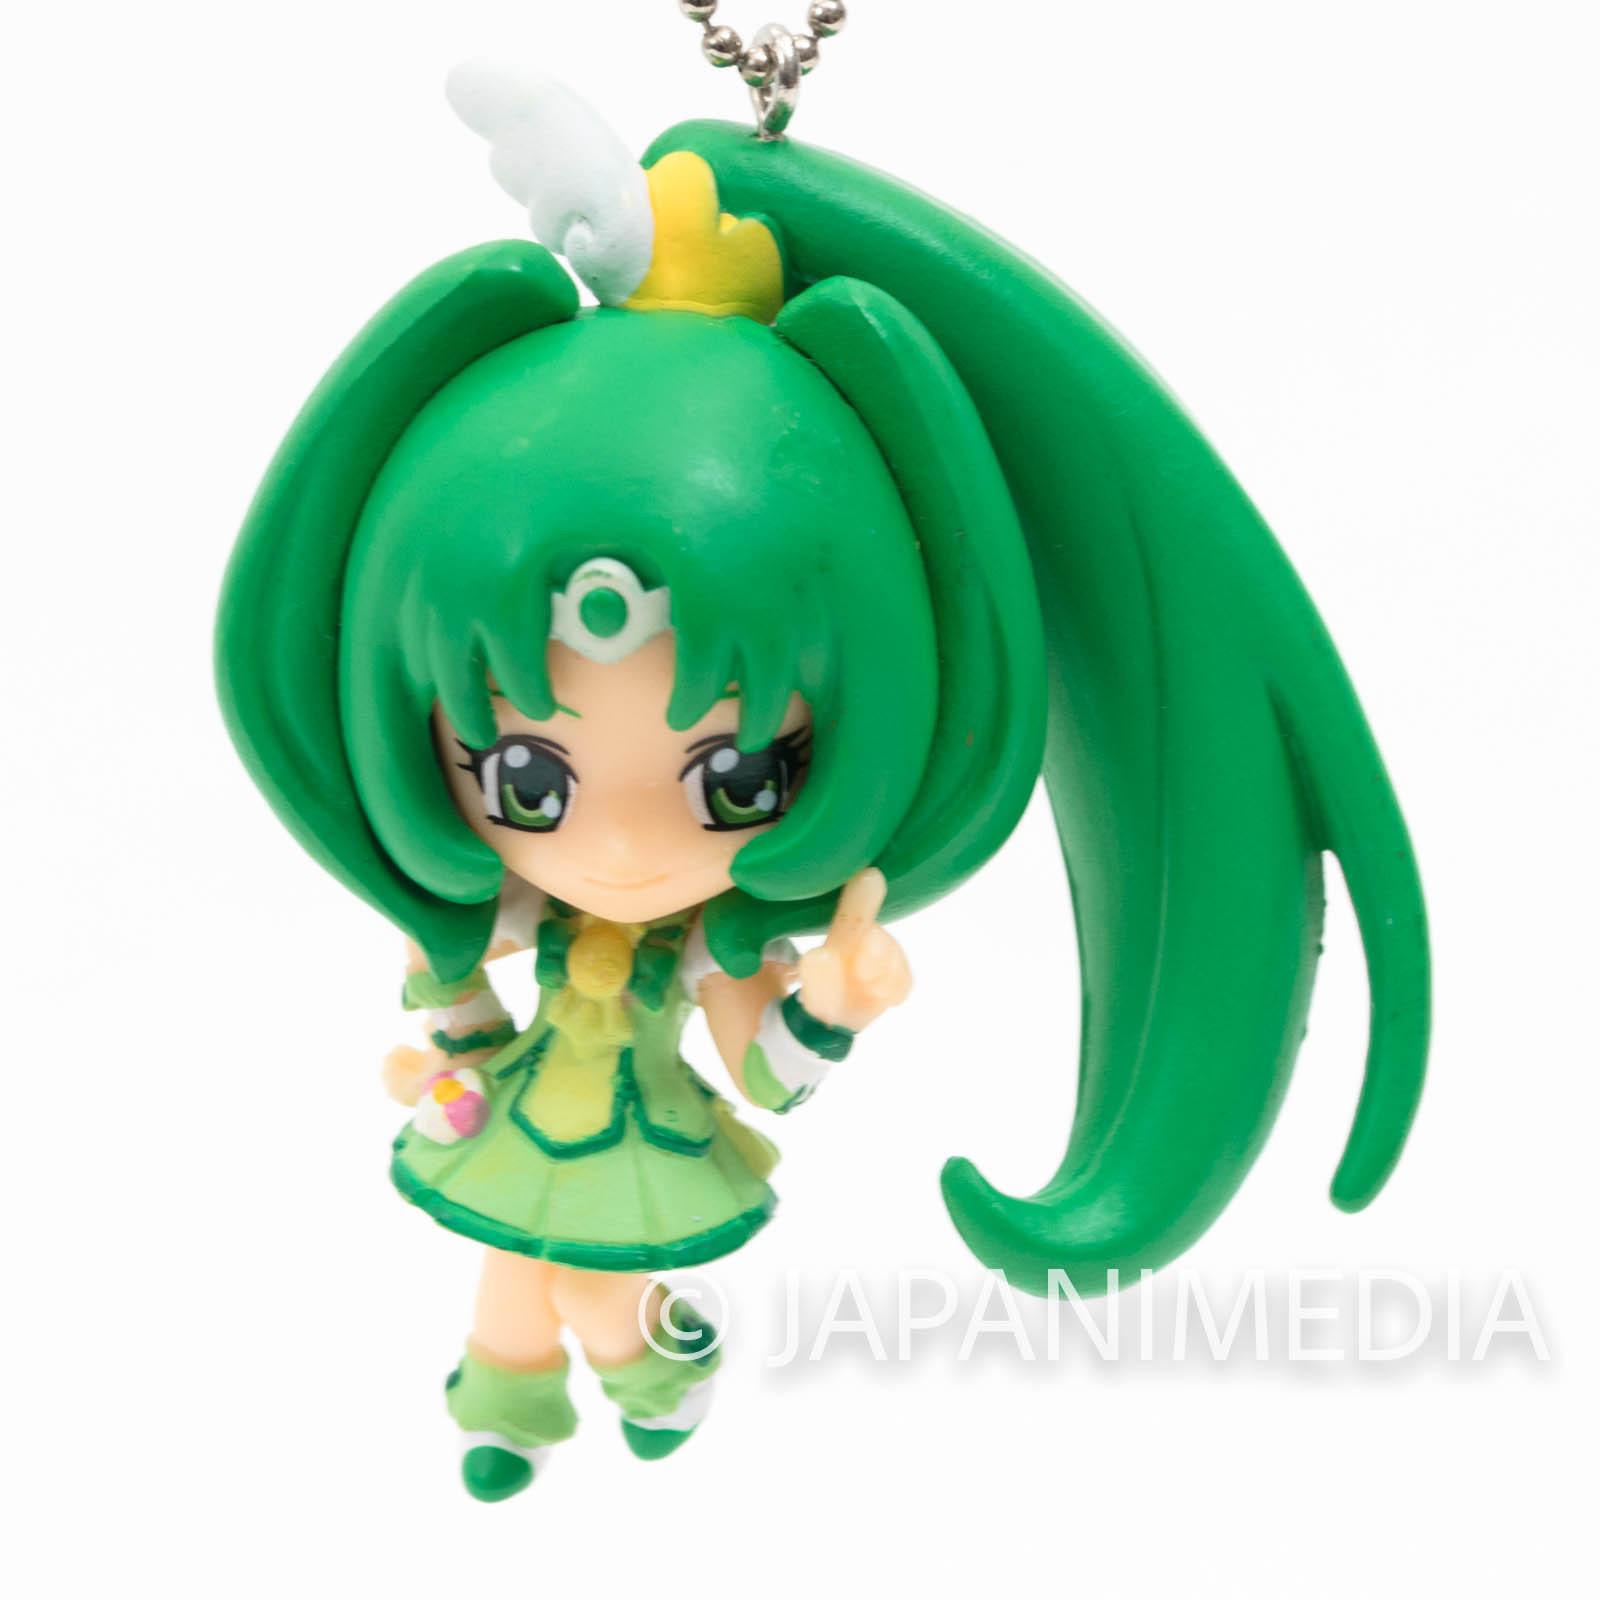 Smile PreCure! Cure March PreCure Mascot Figure Ball Keychain JAPAN ANIME